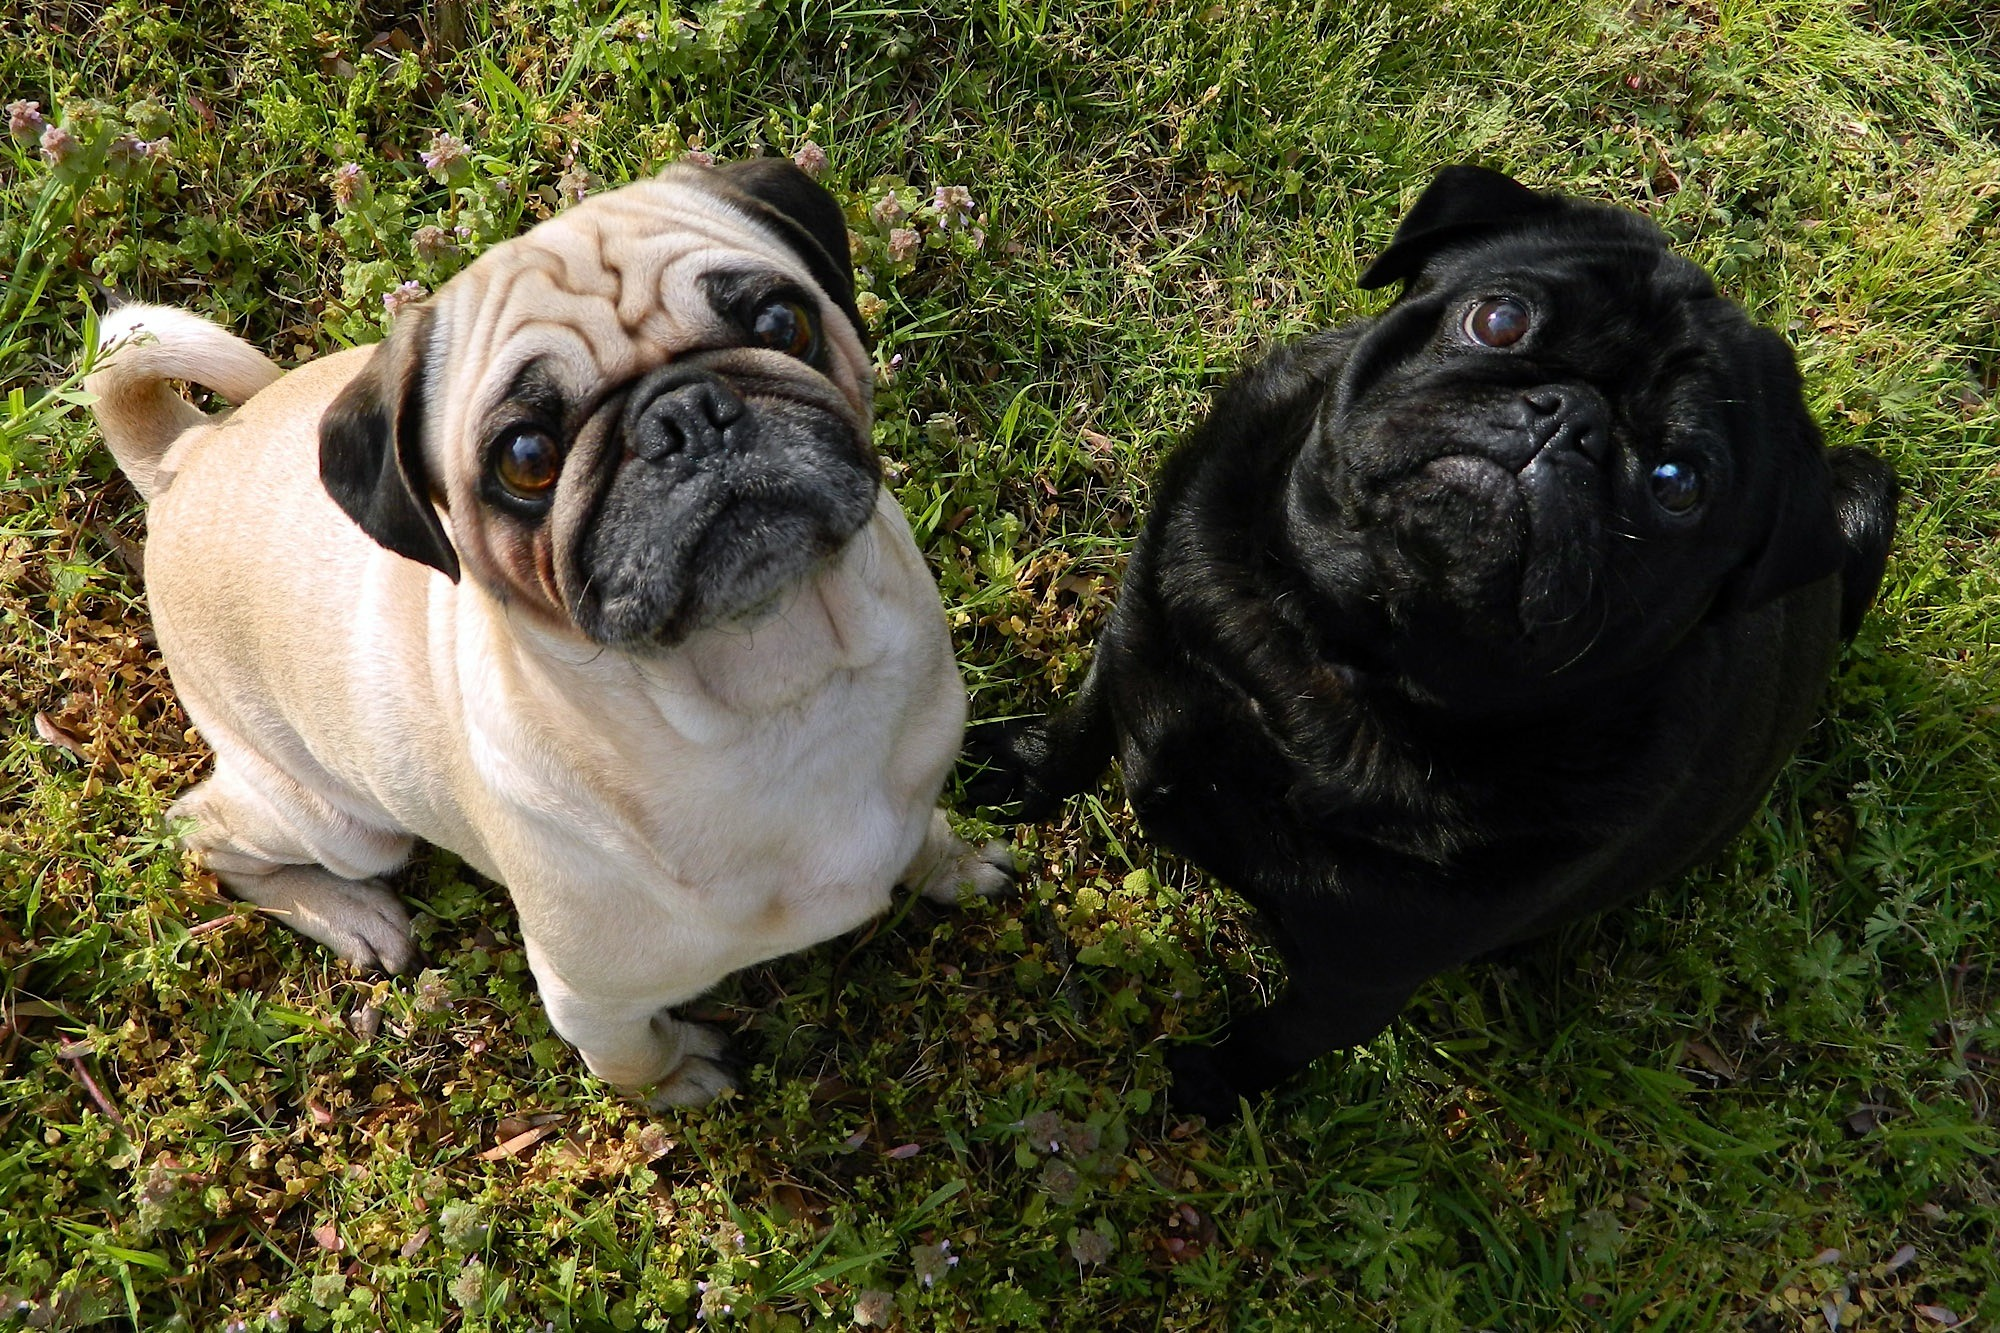 What's your Mutt DNA Black pug and tan pug sitting on grass looking up at camera